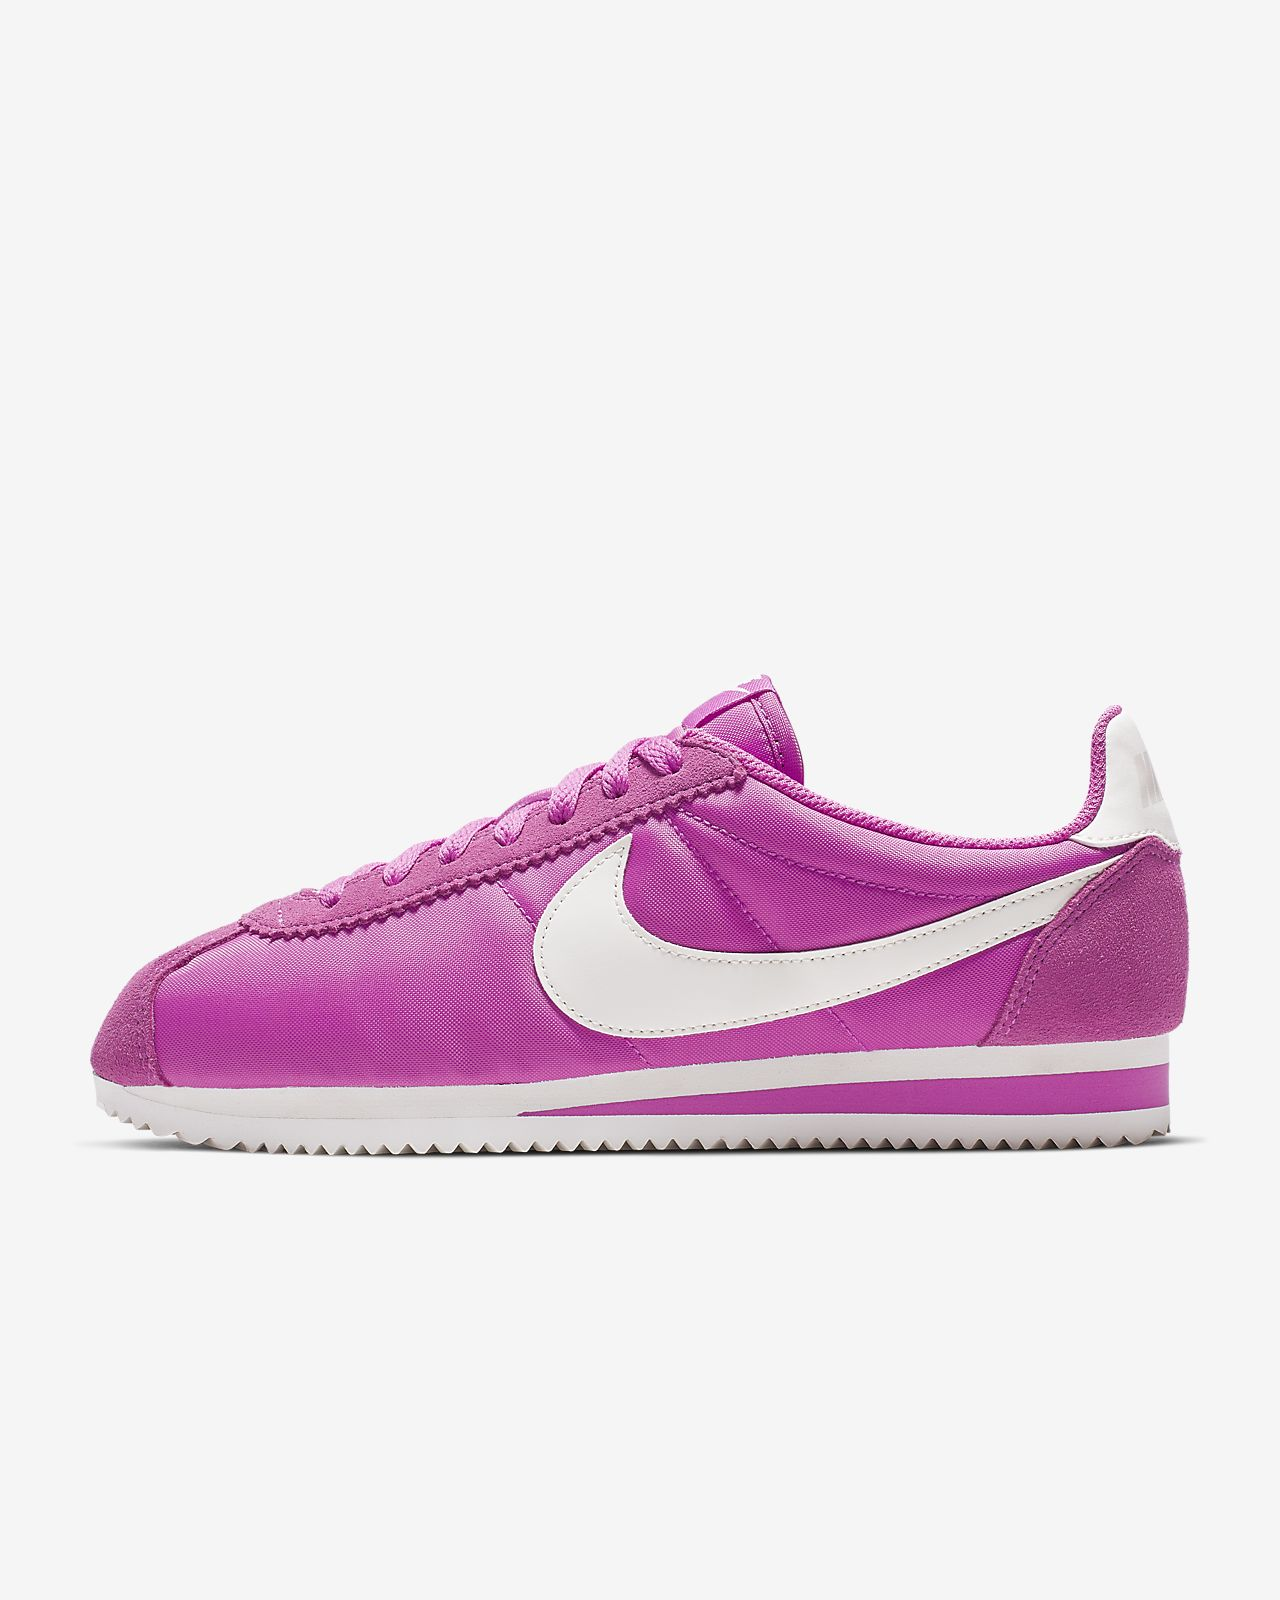 timeless design b3b61 f2f20 ... Chaussure Nike Classic Cortez Nylon pour Femme